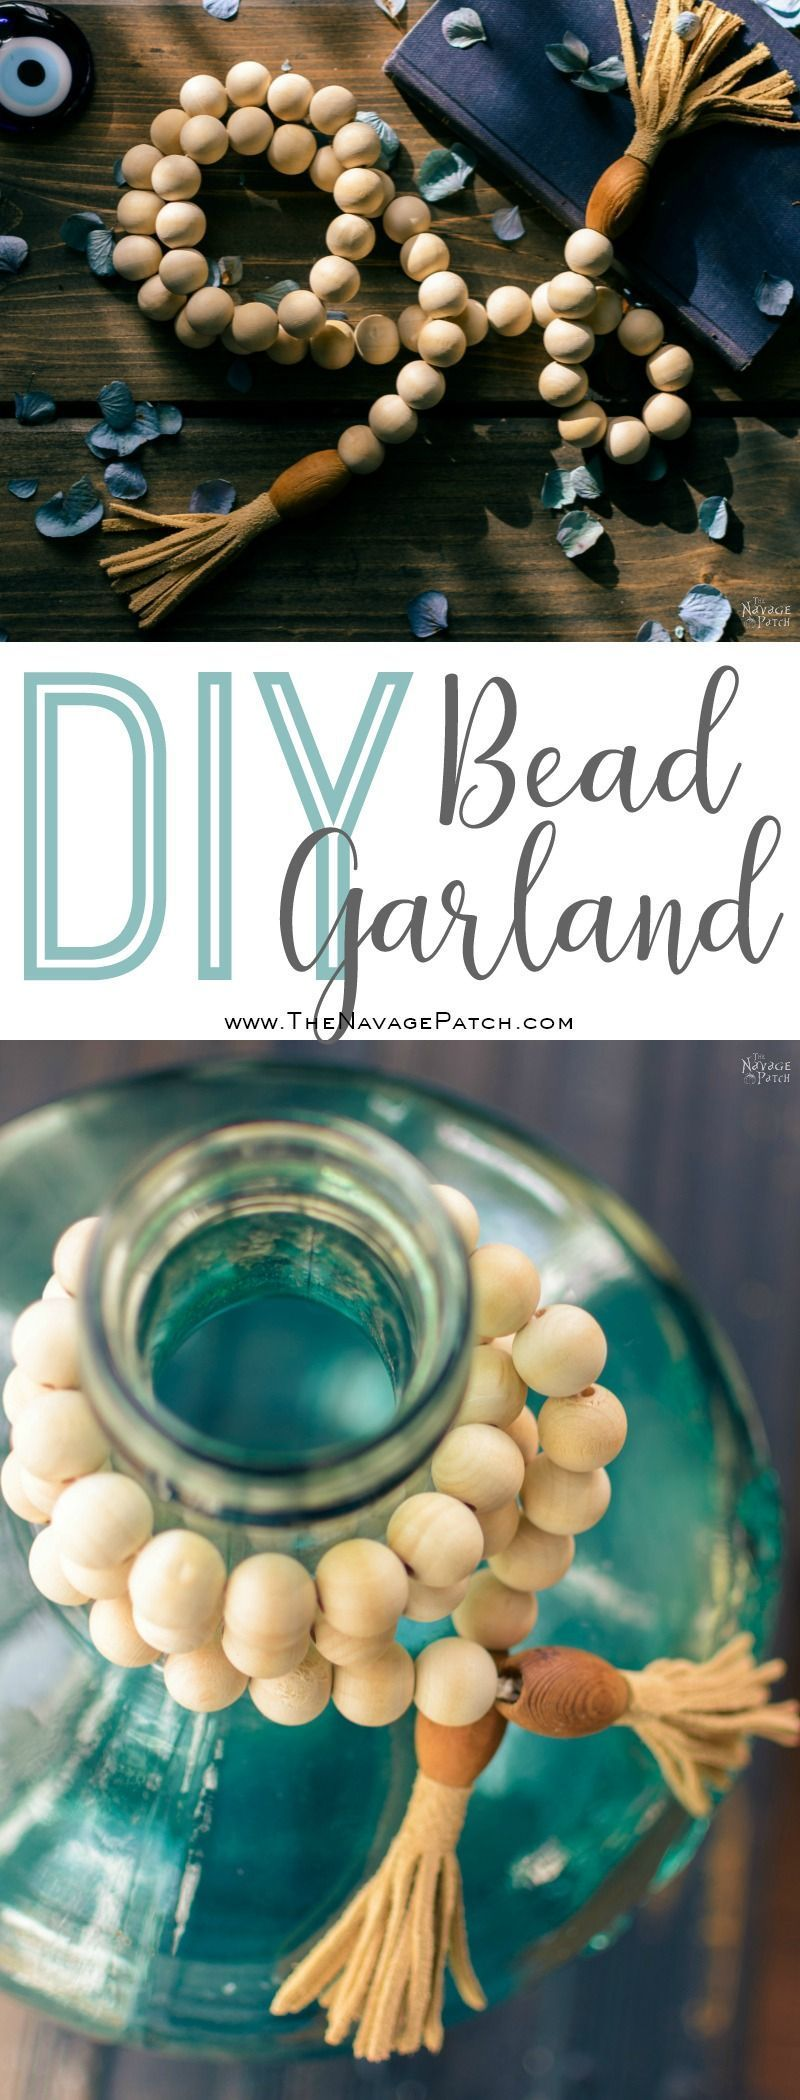 DIY Wood Bead Garland | How to make a wood bead garland in 5 minutes ...